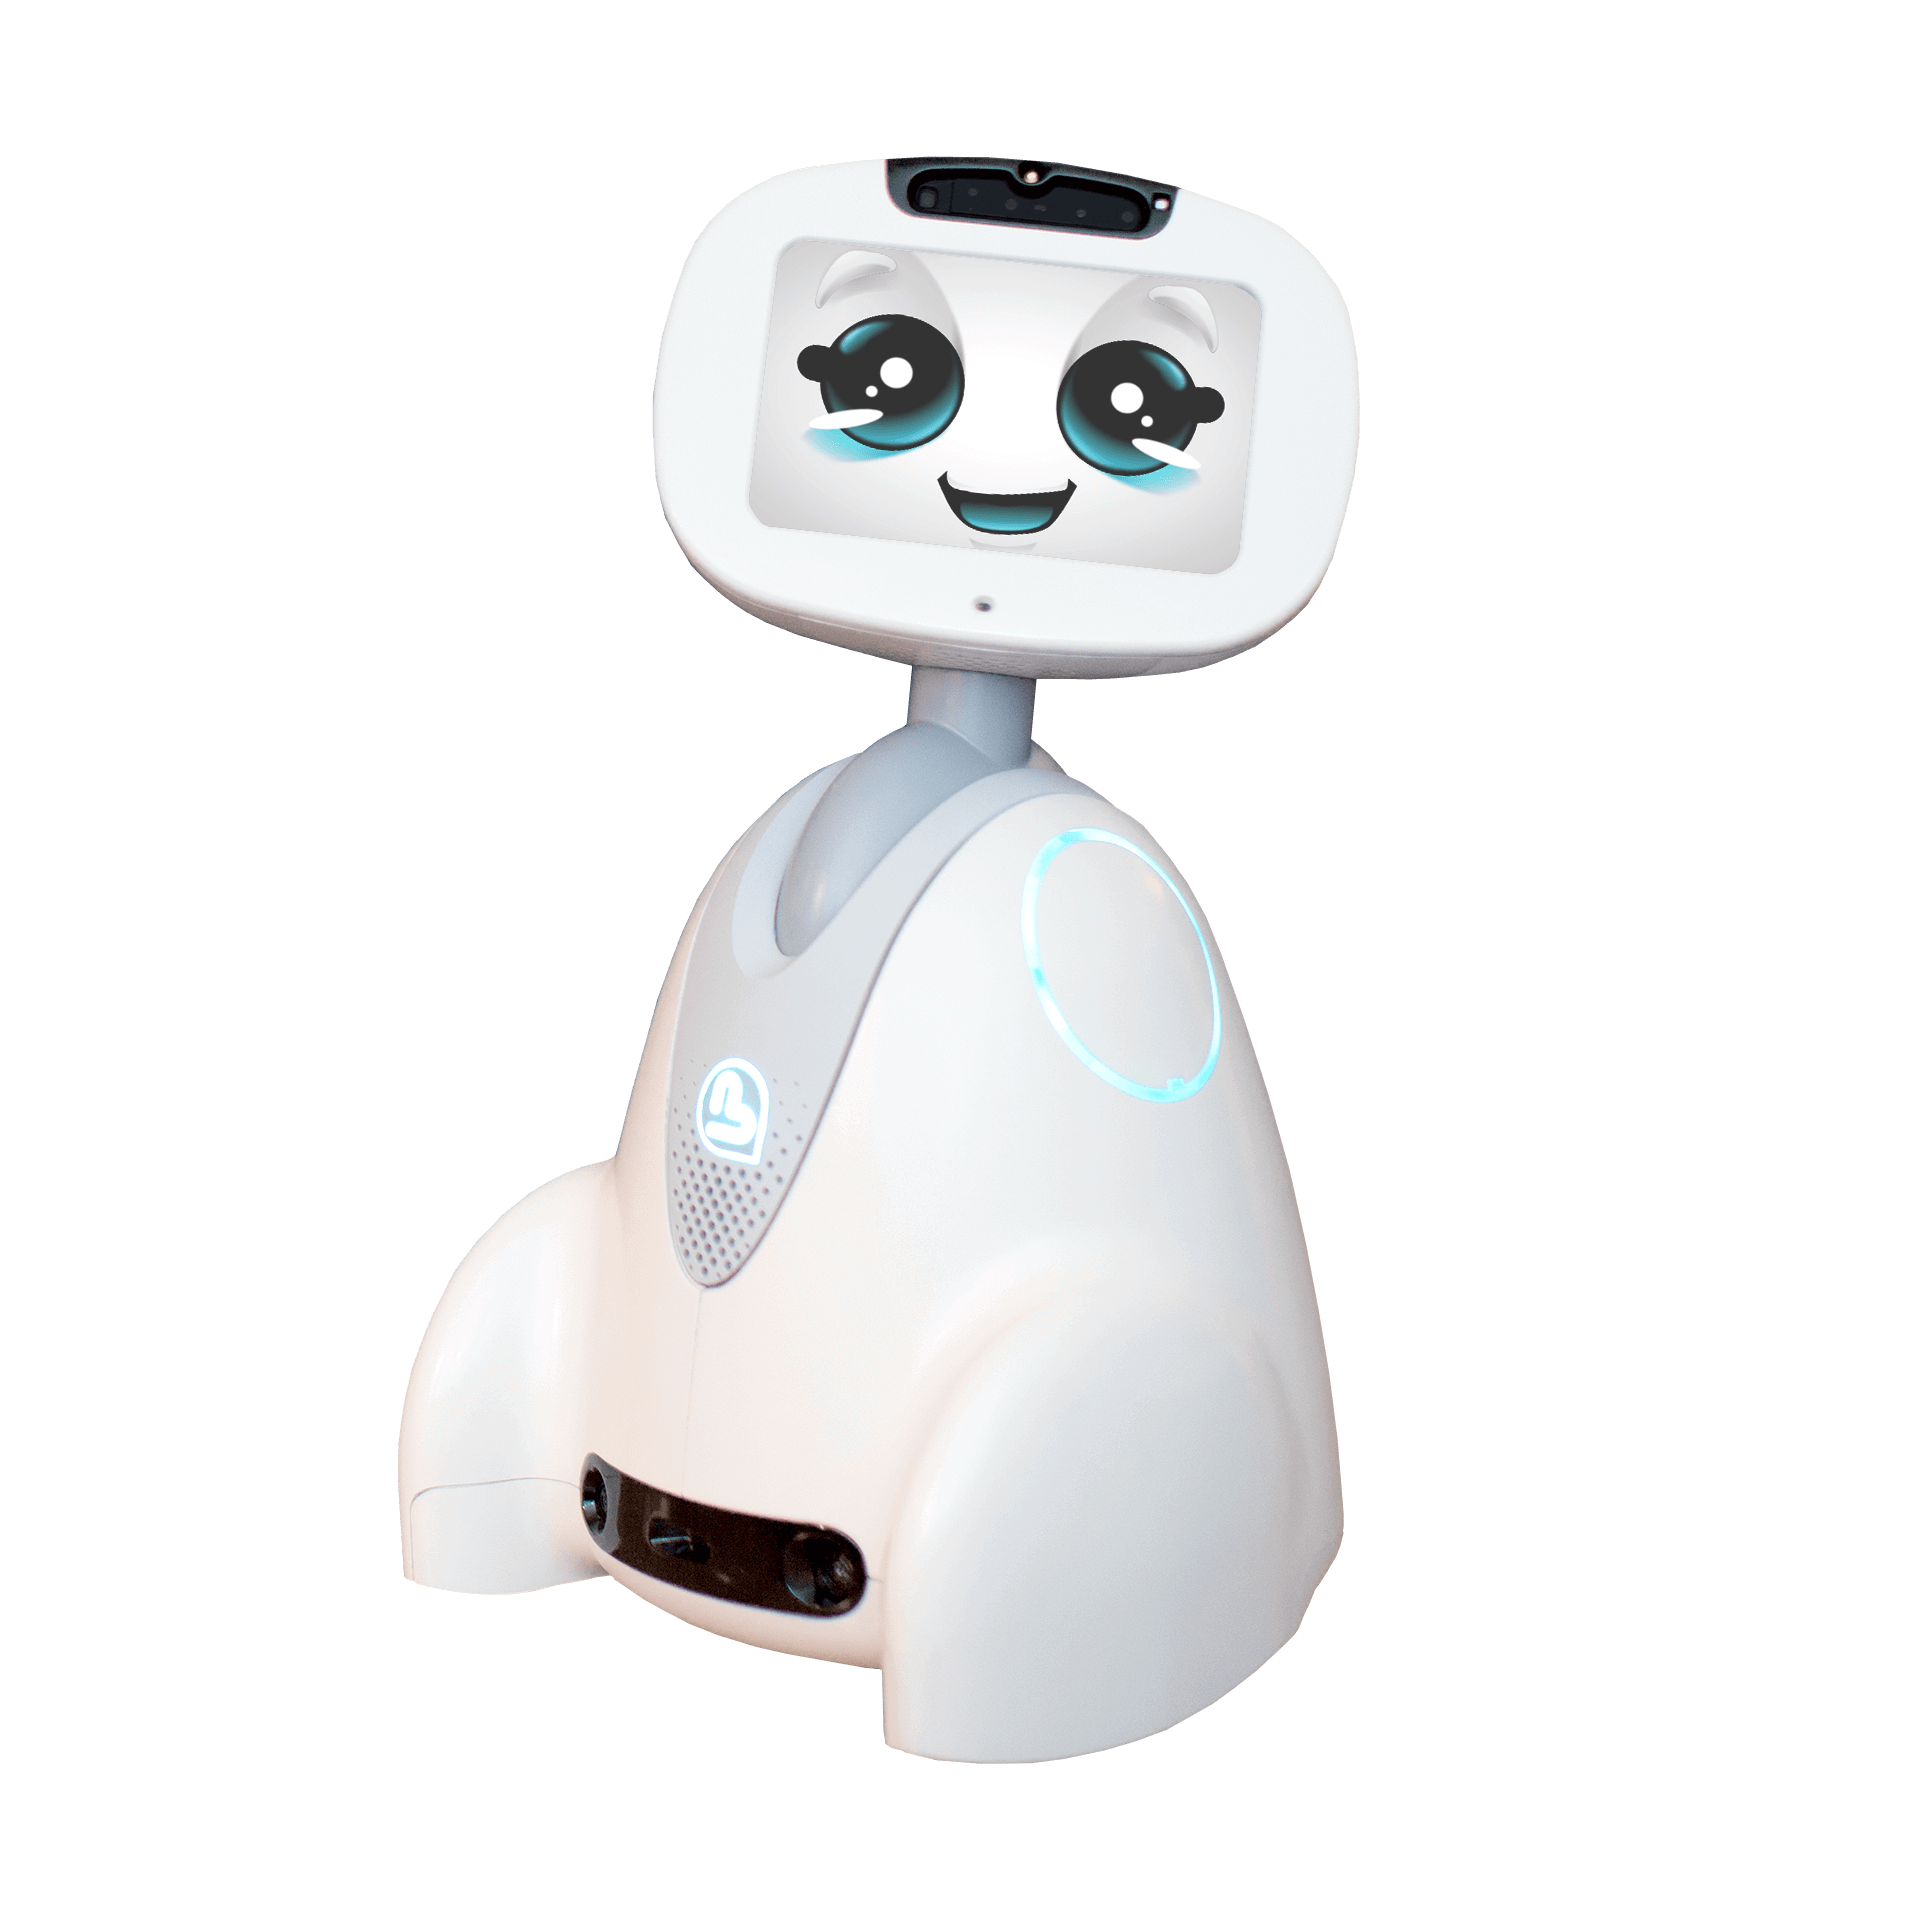 BUDDY is a robo with feelings